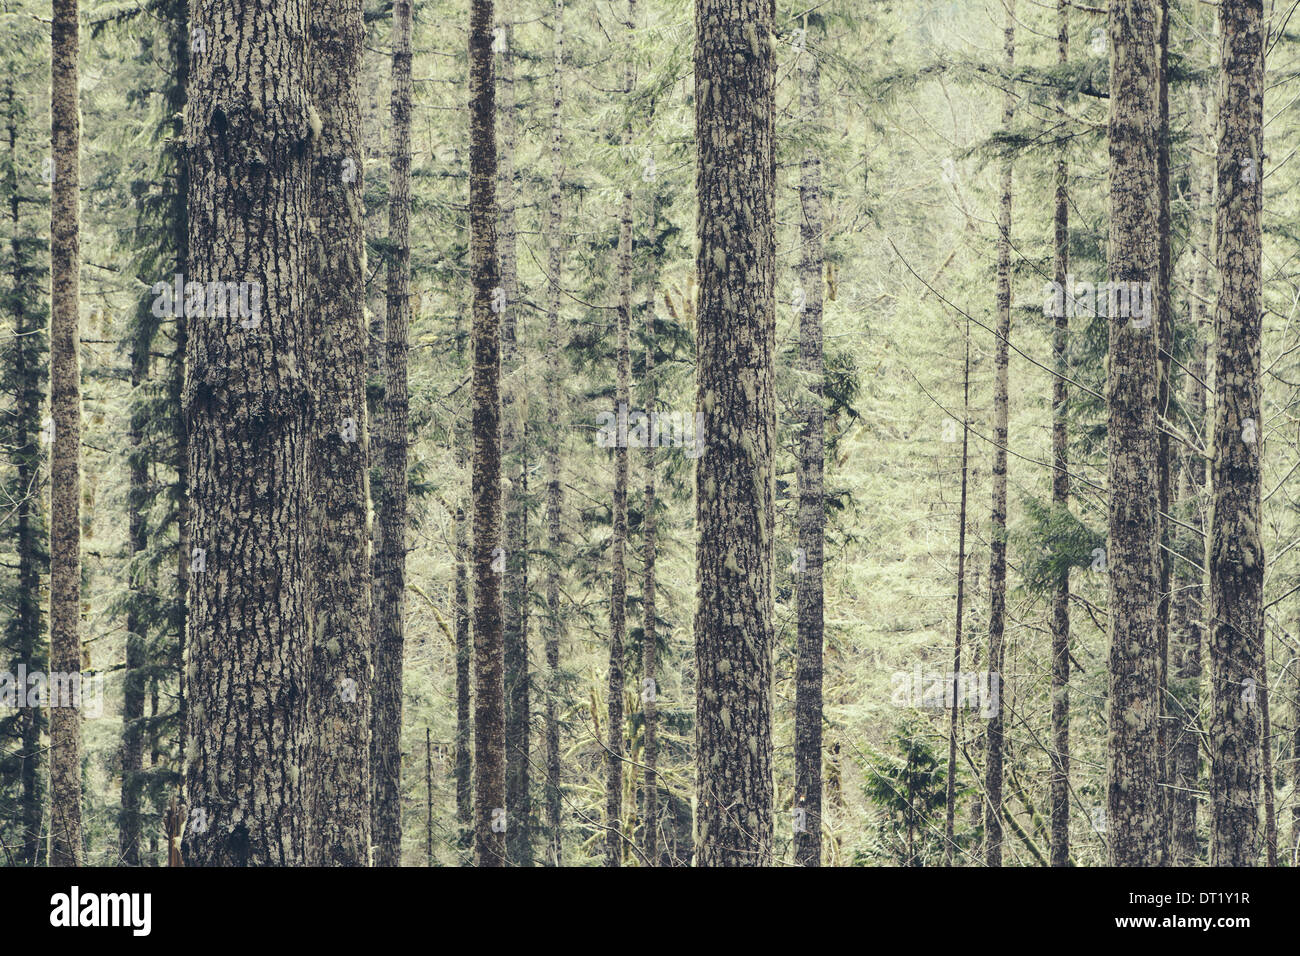 A dense forest of green moss covered trees of old growth cedar fir and hemlock in a national forest in Washington USA - Stock Image